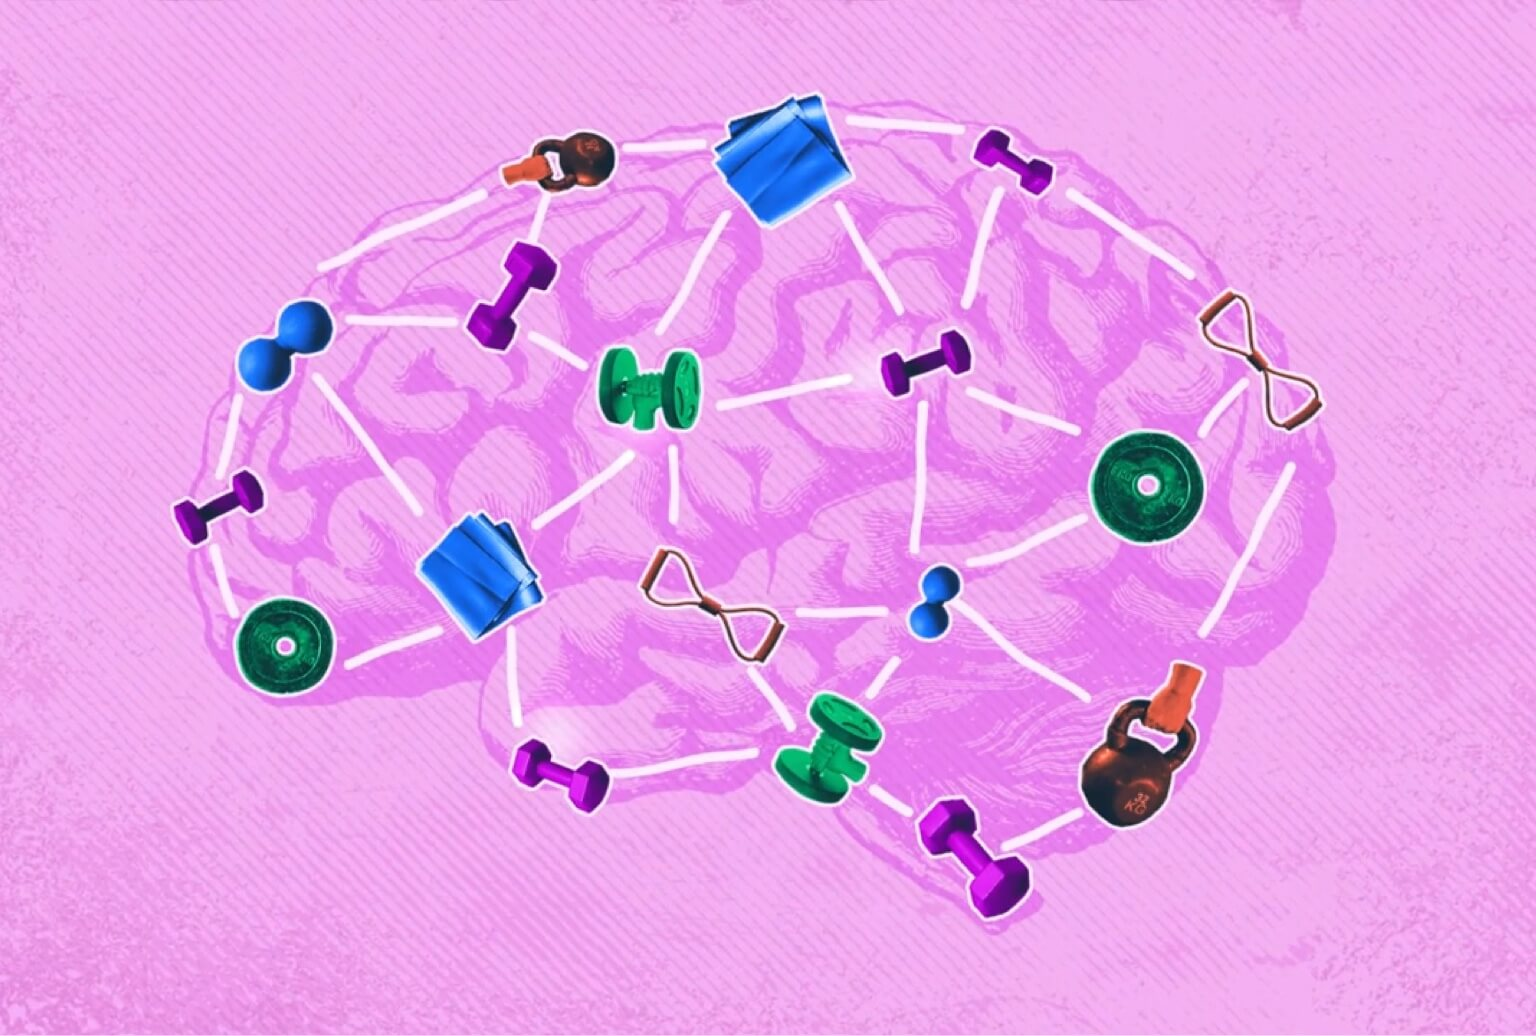 Brain illustration with various pieces of exercise equipment overlaid on top.